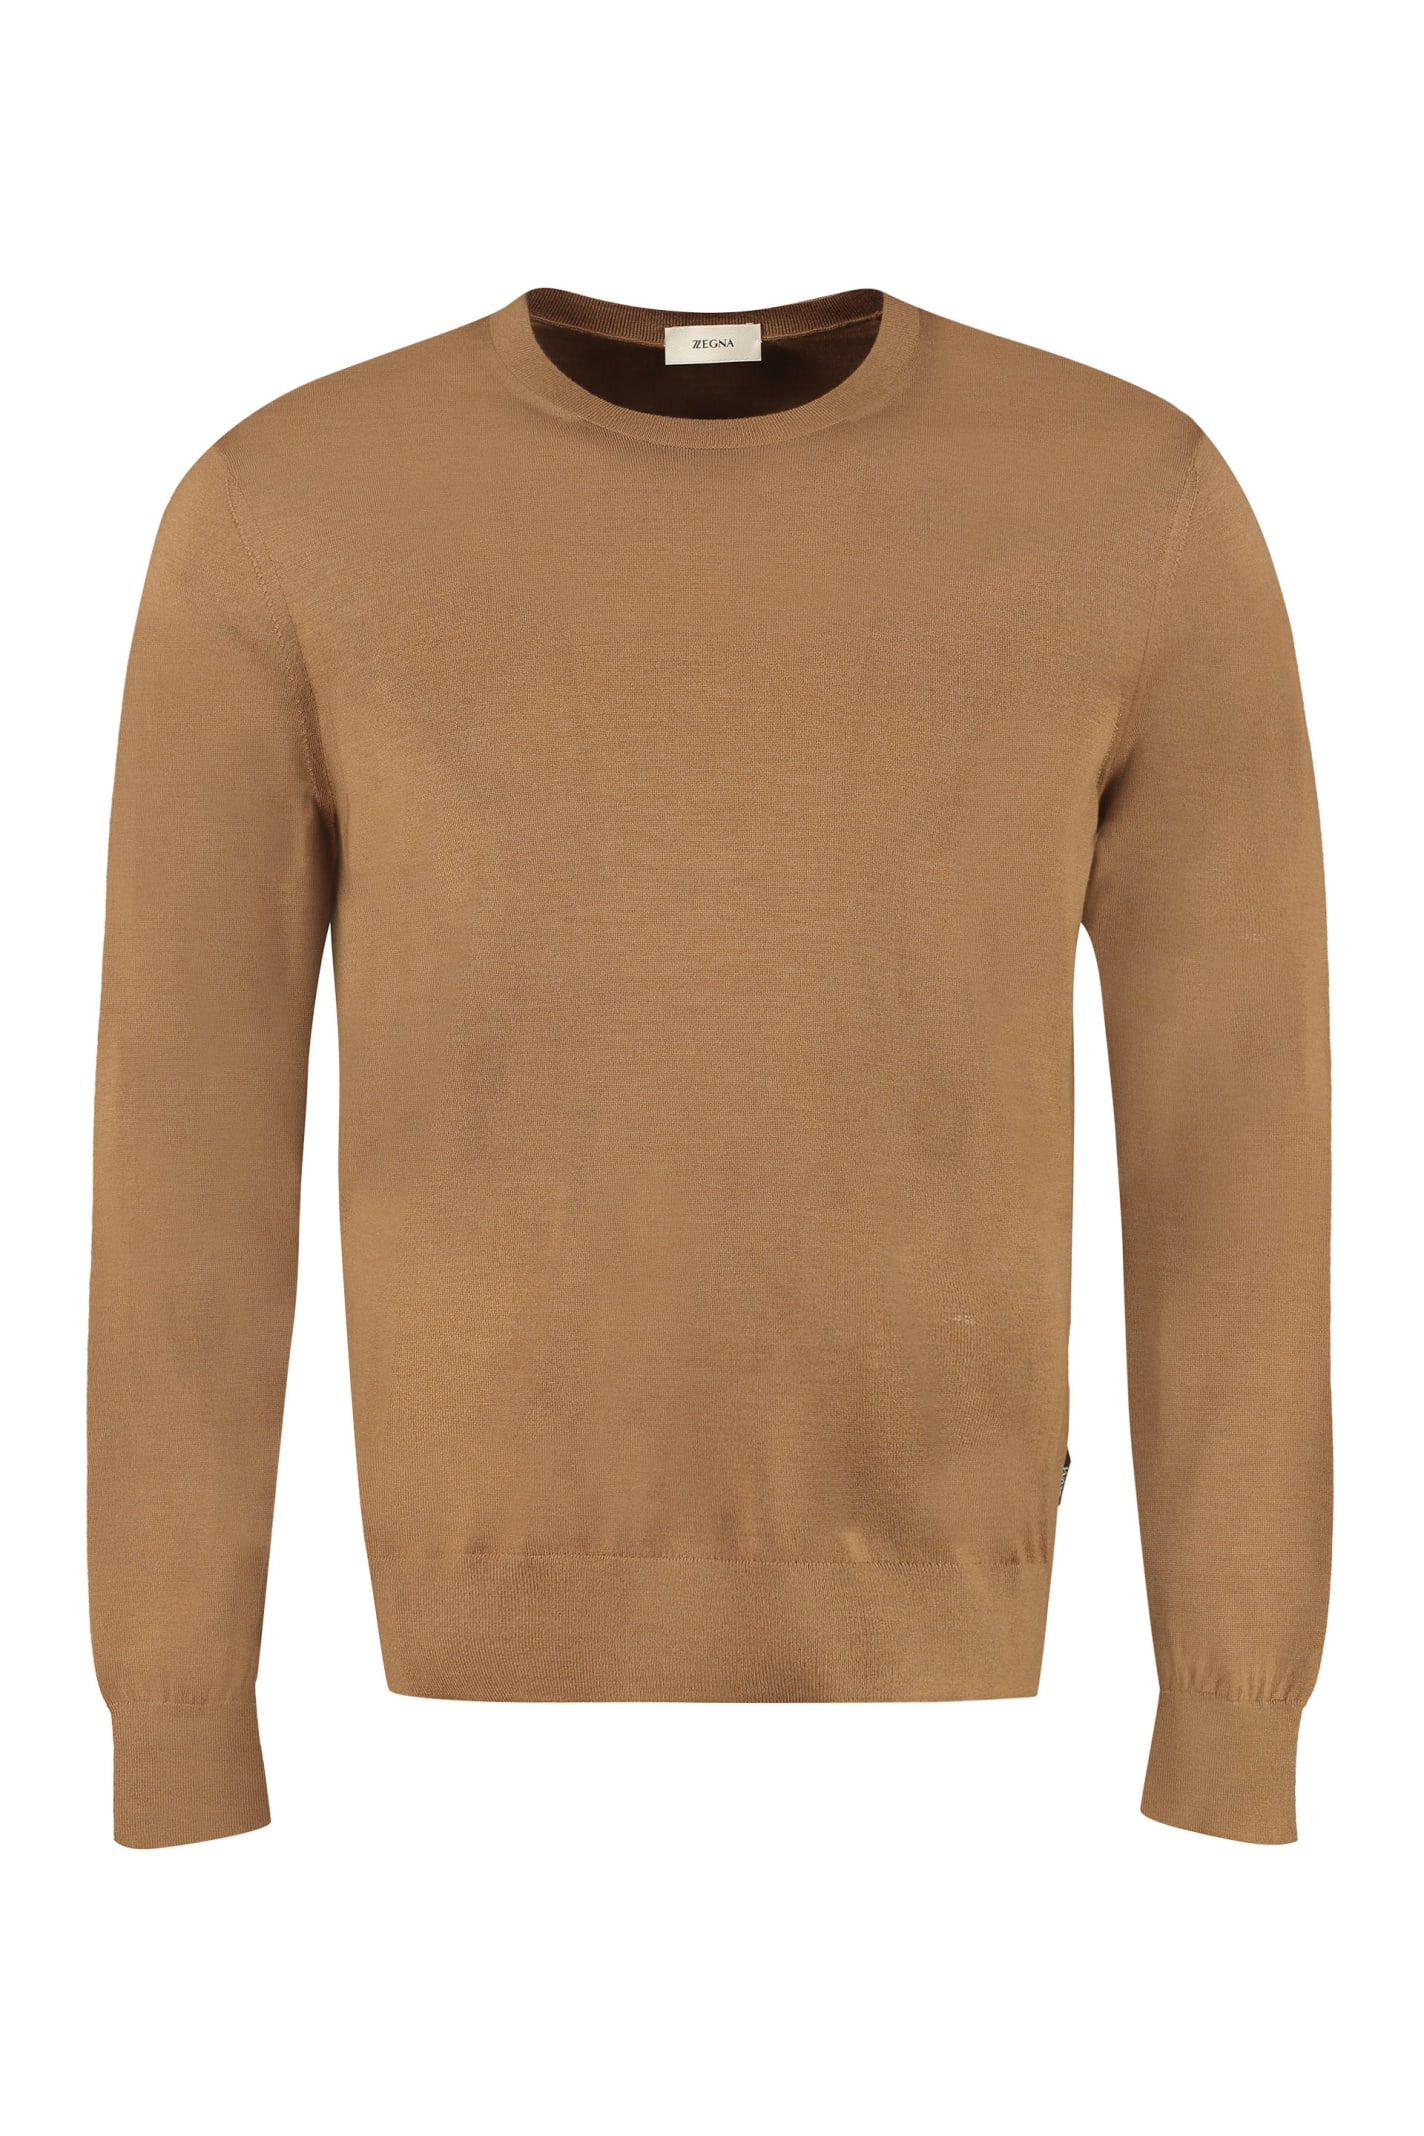 Z Zegna Wool Crew-neck Sweater